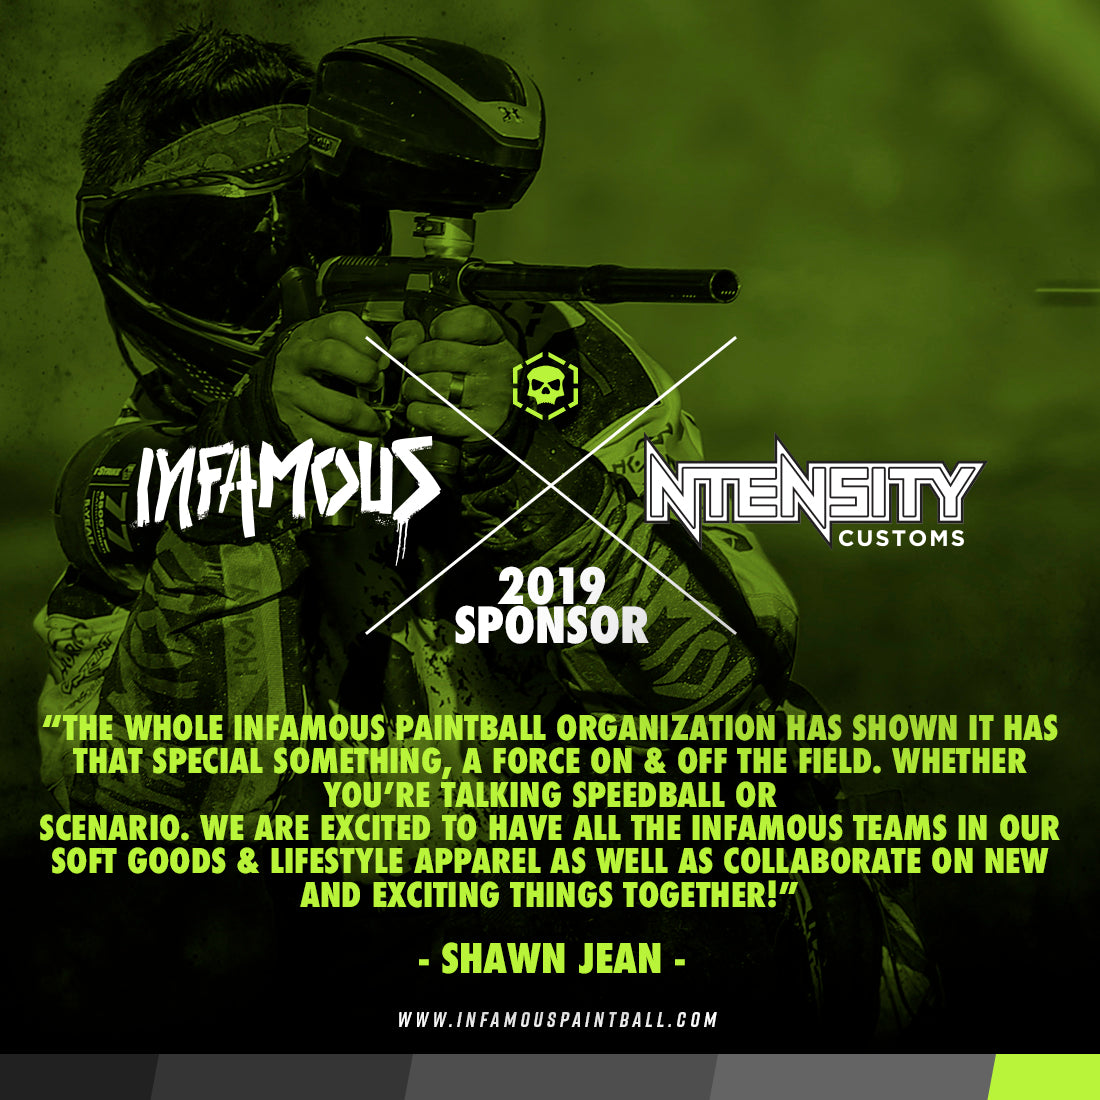 Infamous Ntensity Sponsorship 2019